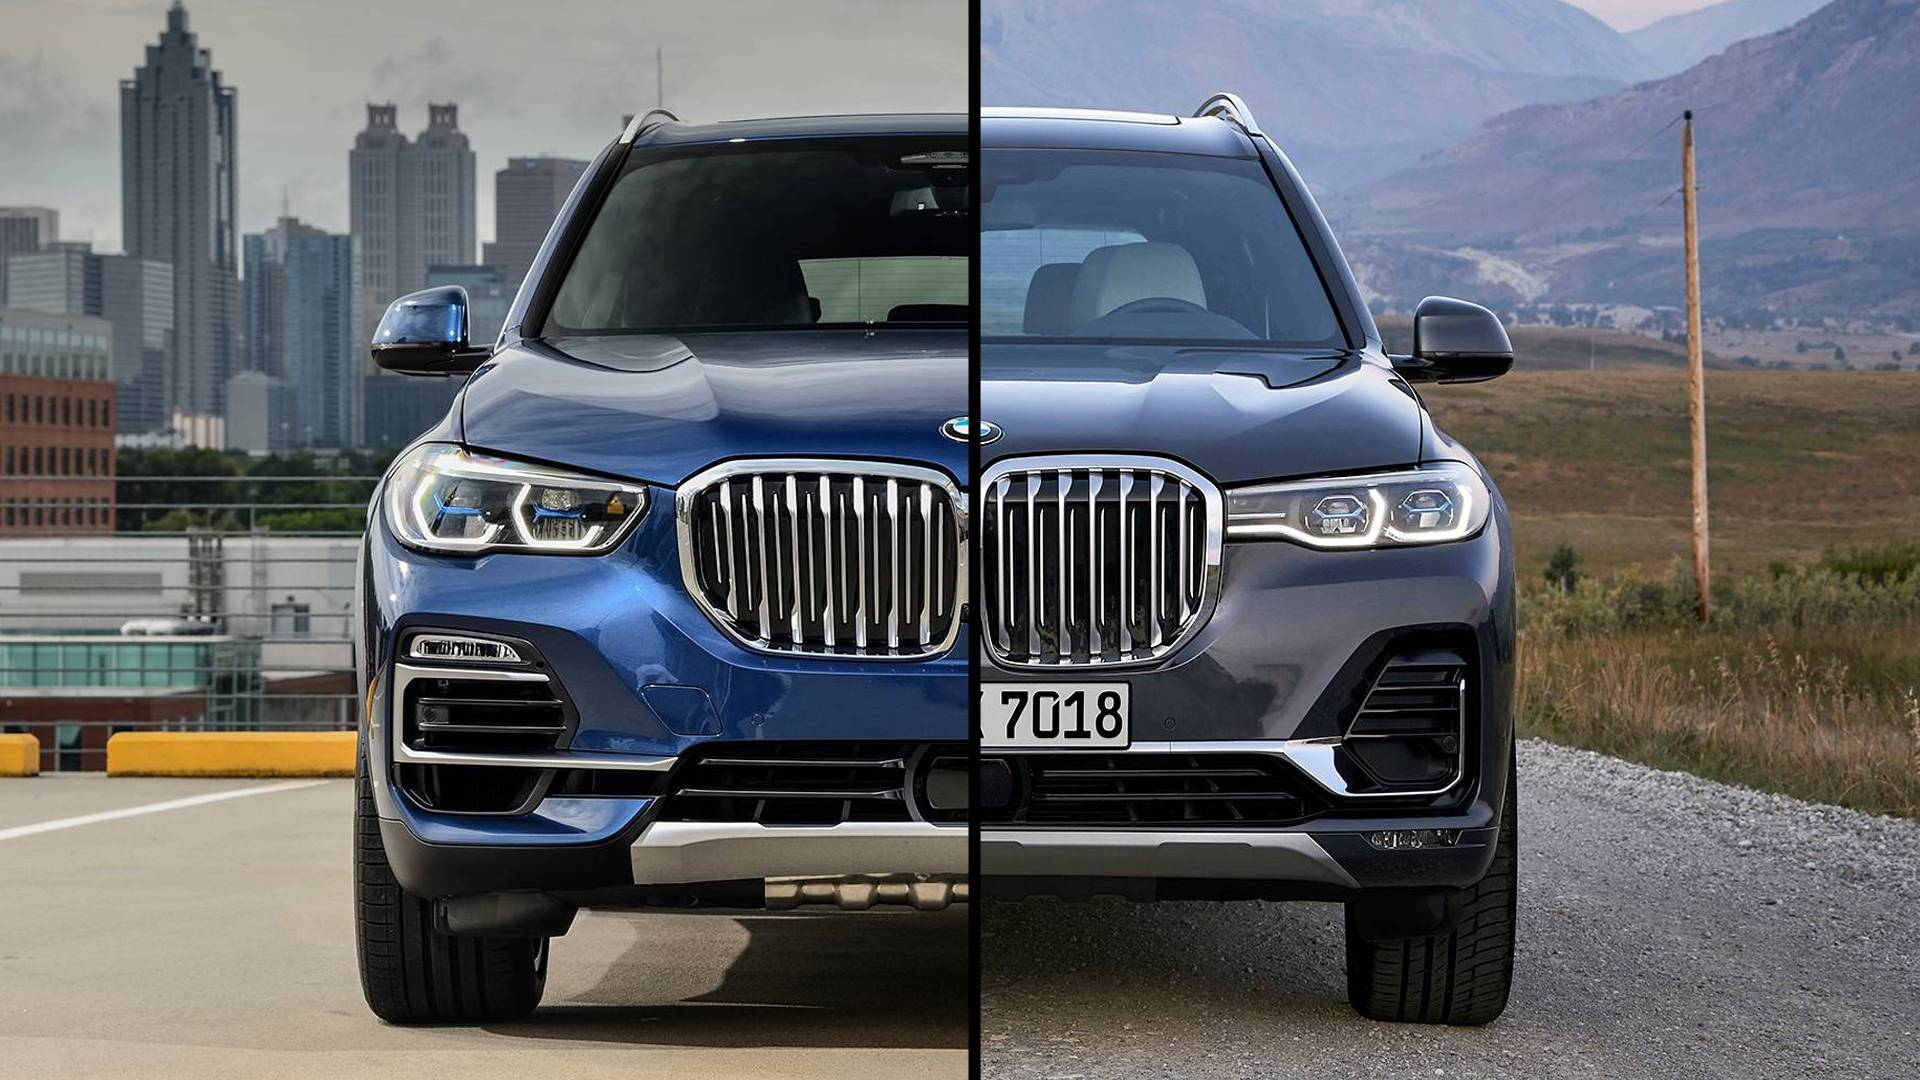 Bmw X7 Vs X5 See The Changes Side By Side